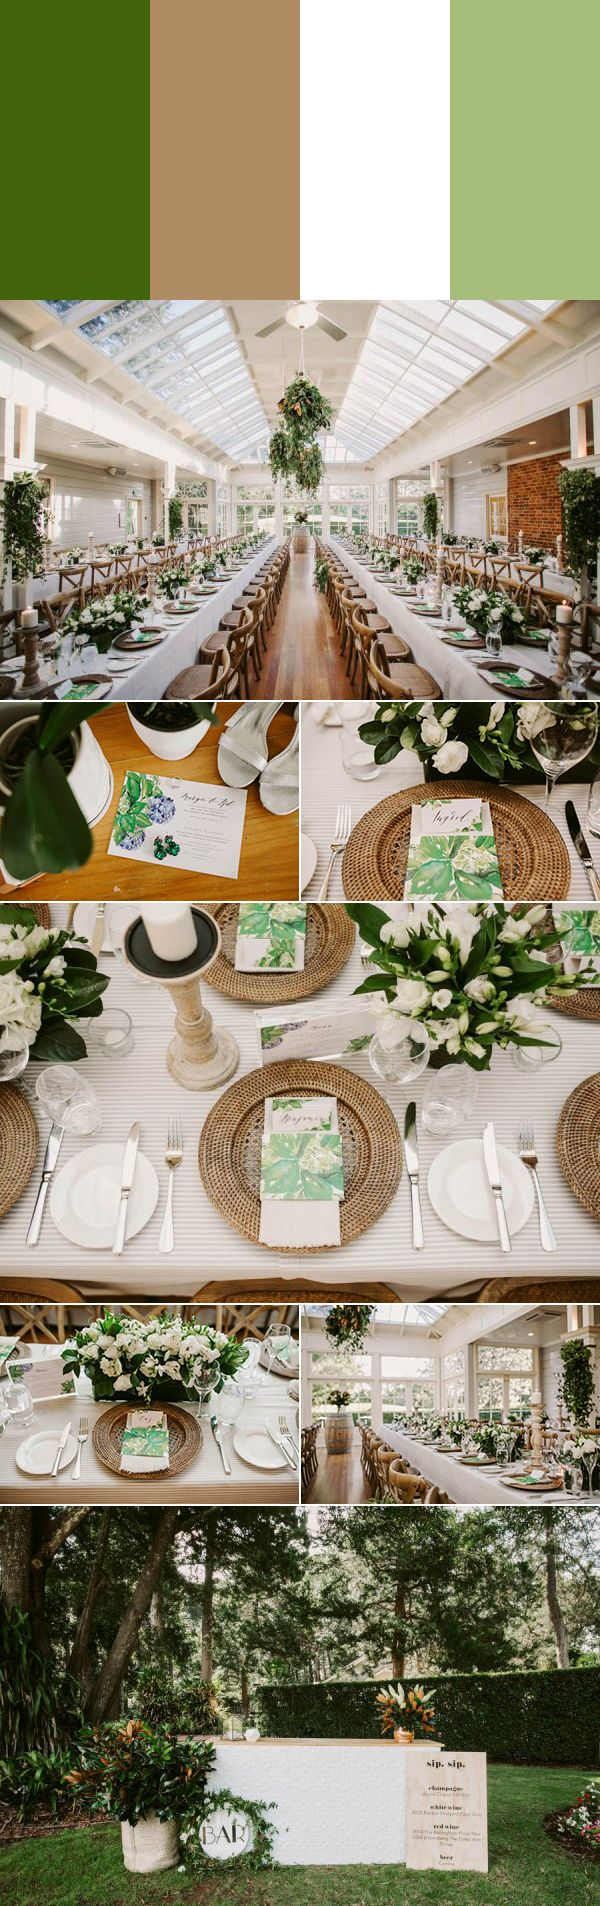 Tree green, tan, white, and lime wedding color palette | Images by Edwina Robertson